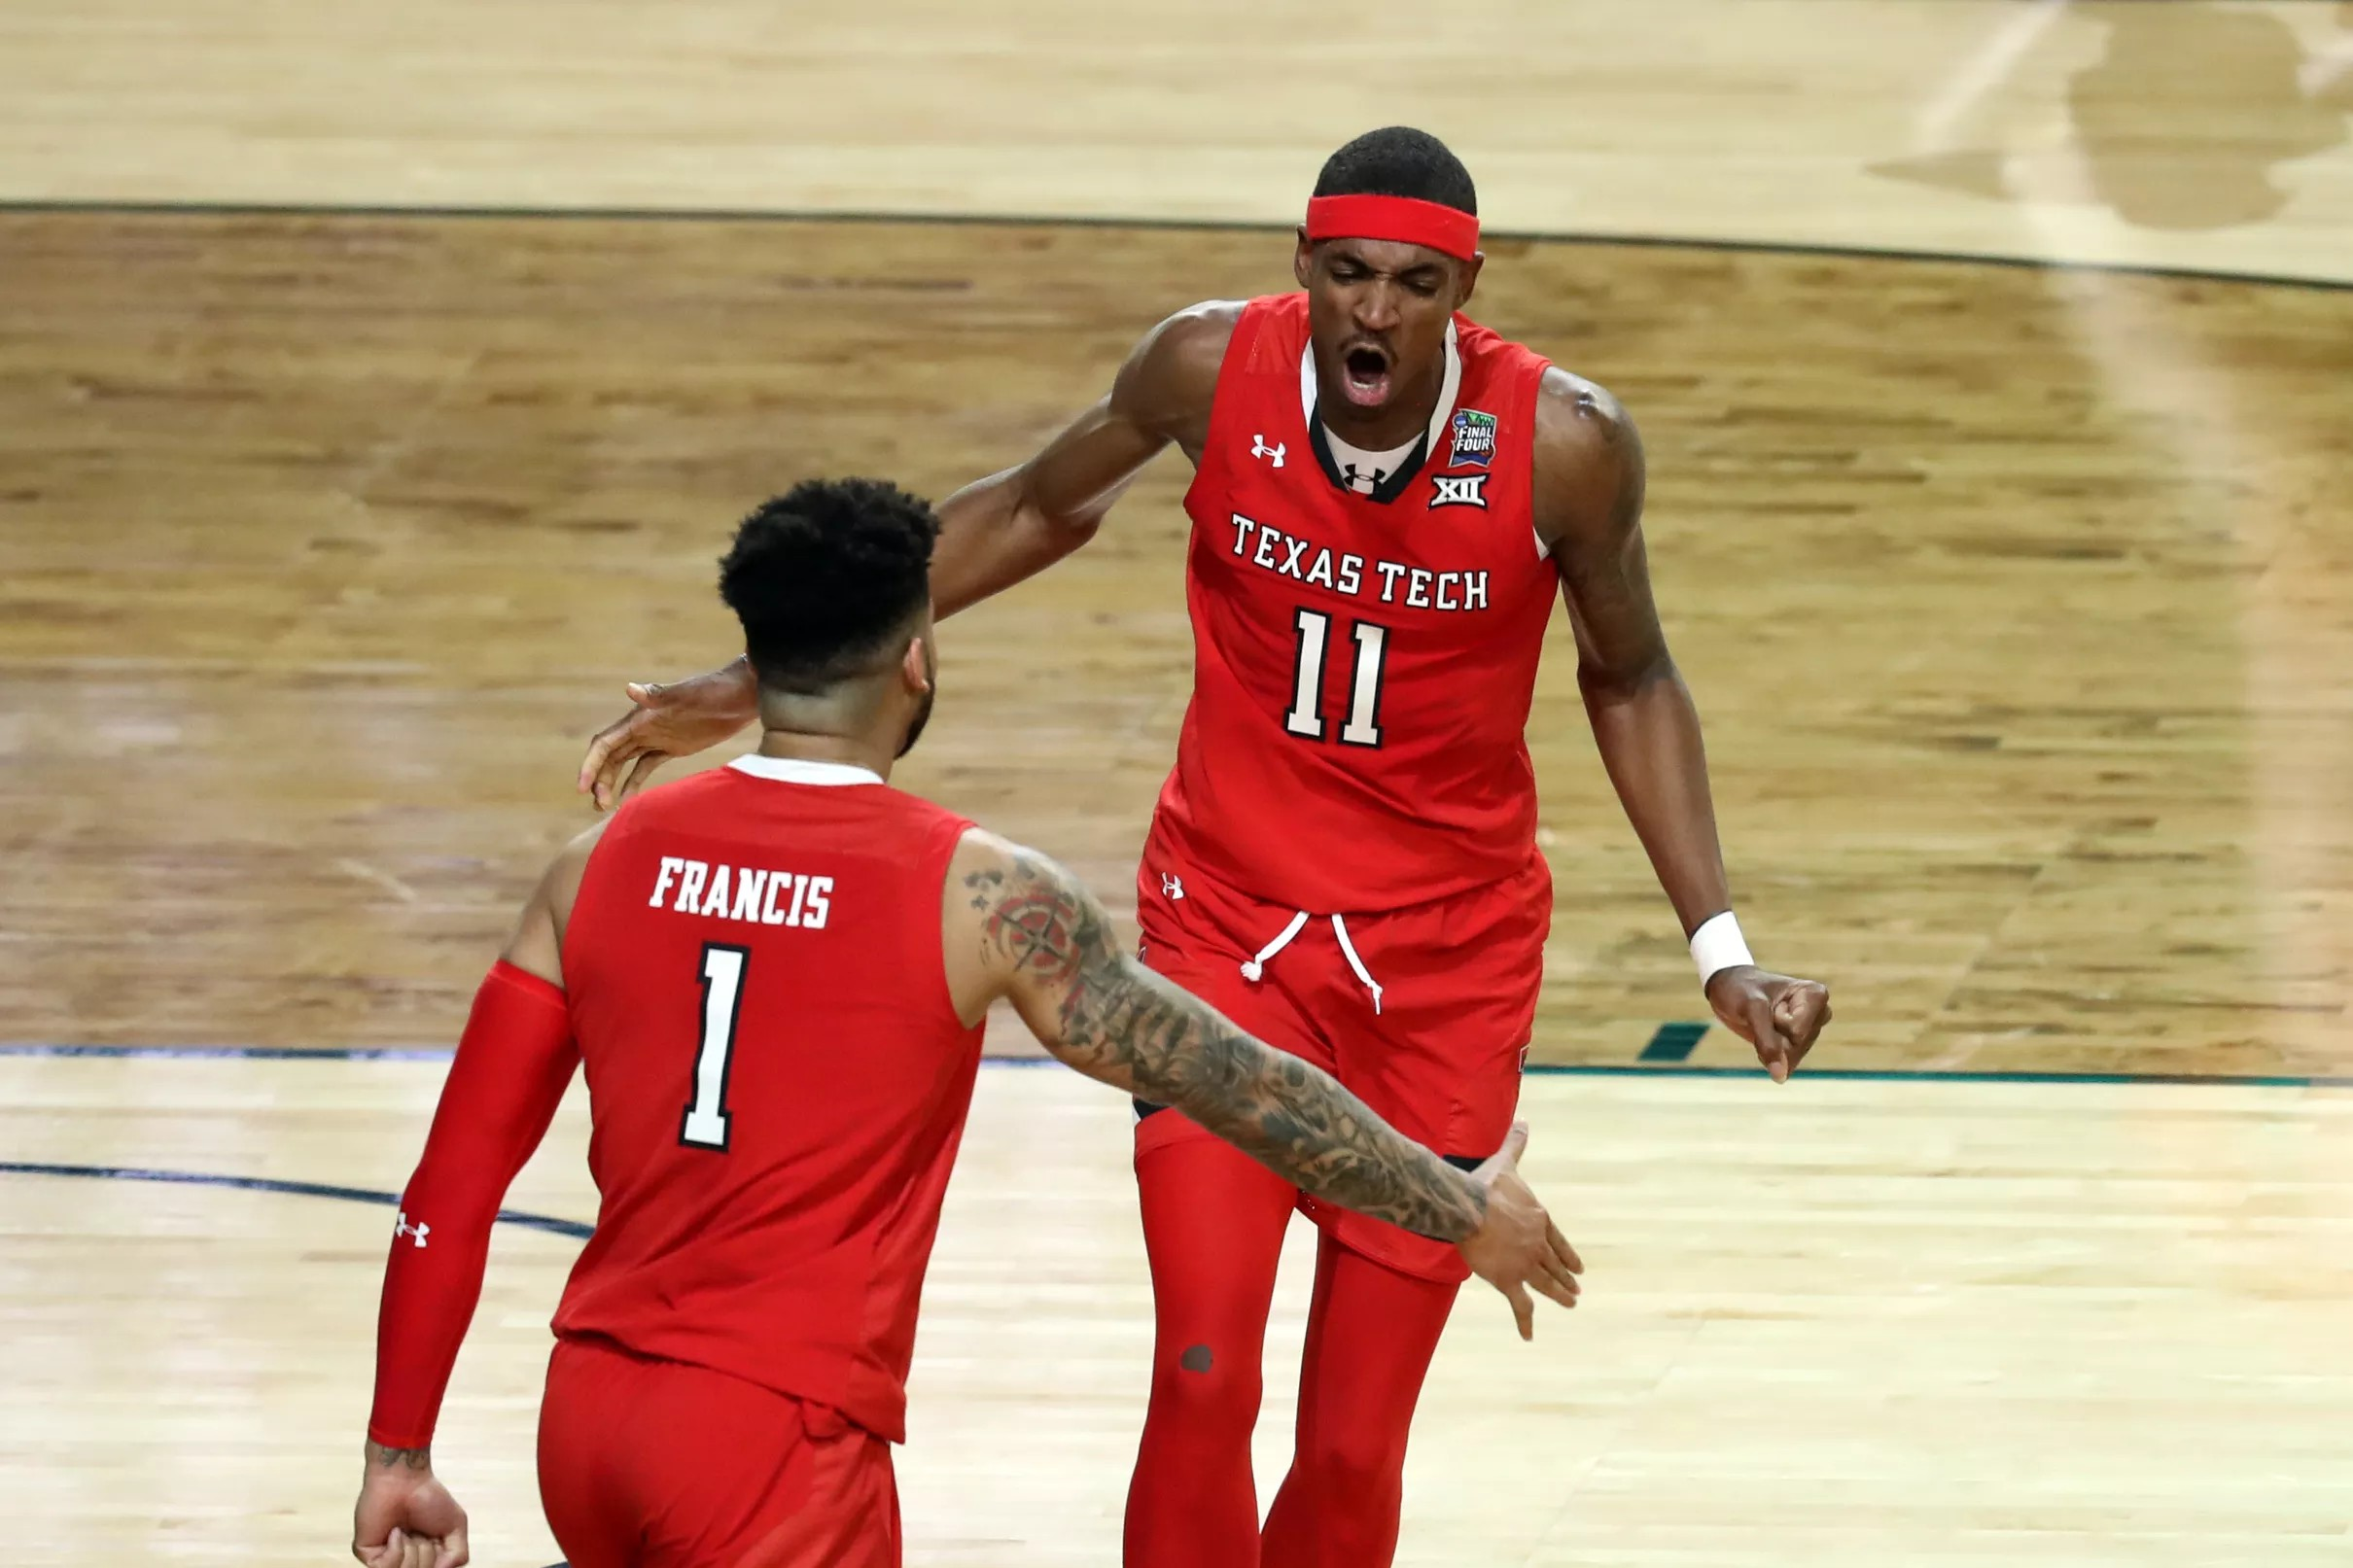 Could Tariq Owens Potentially Be An Nba Player One Day